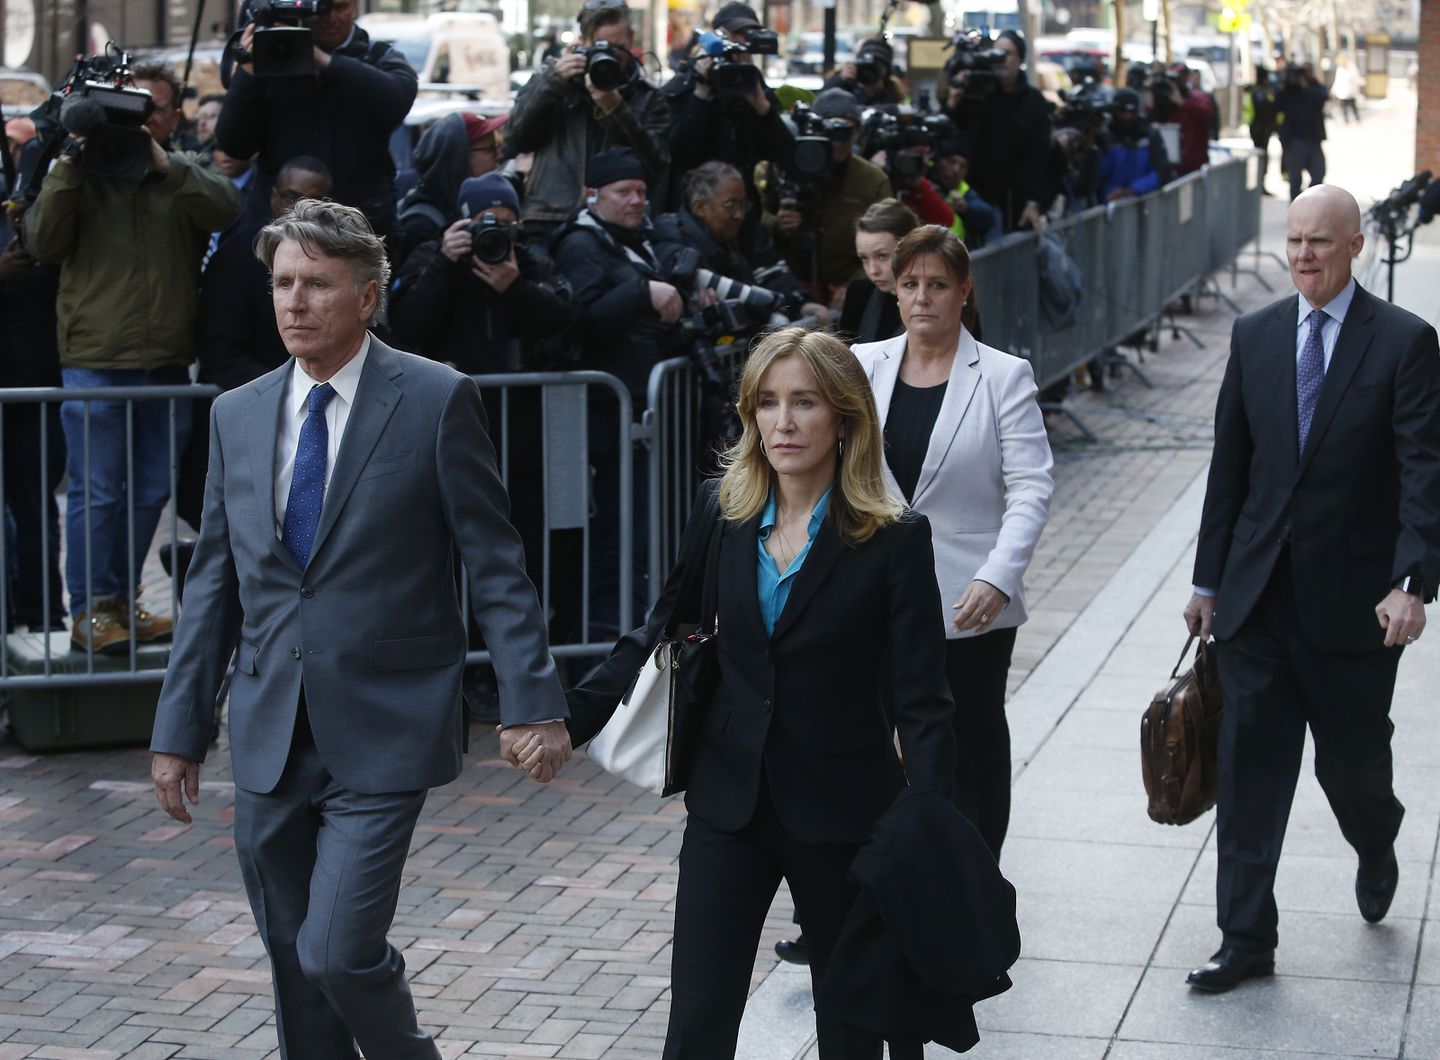 Felicity Huffman to formally plead guilty in college admissions scam